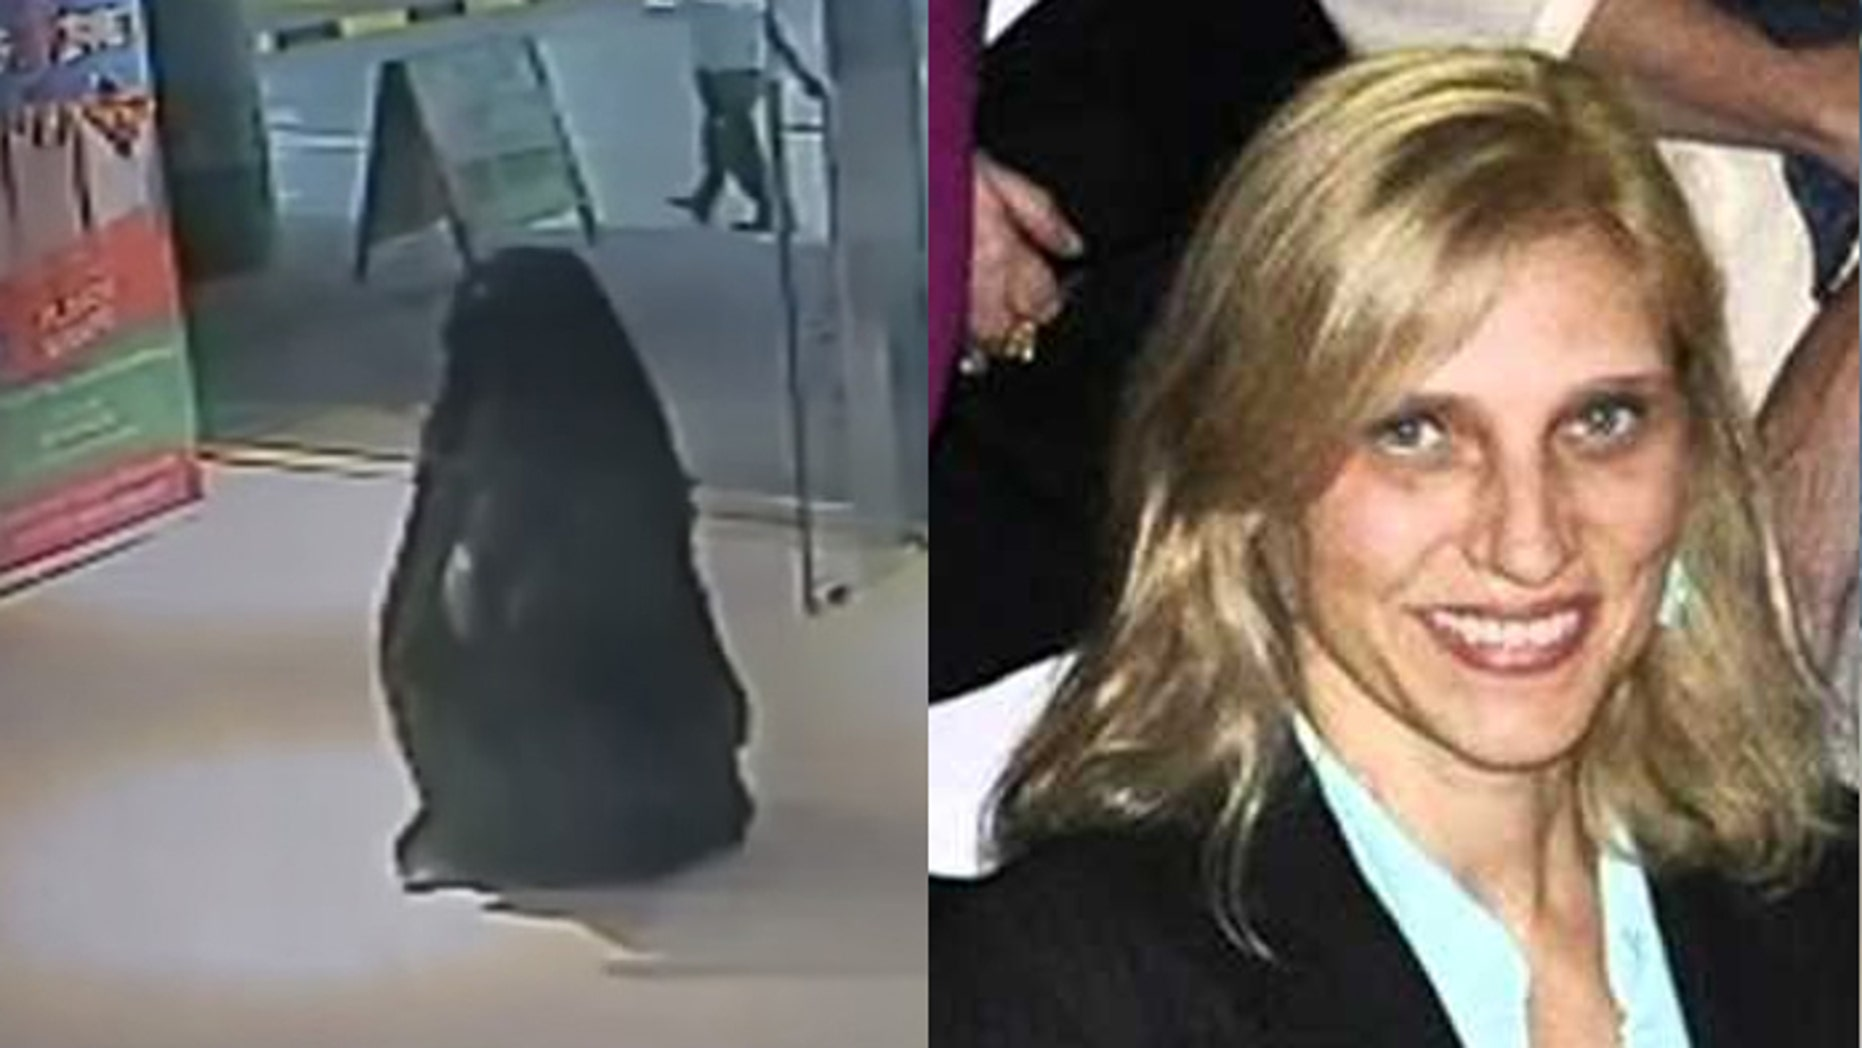 Alaa Bader Abdullah al-Hashemi was captured on video going into the mall restroom where she killed 47-year-old schoolteacher Ibolya Ryan (r.). (UAE, Facebook)